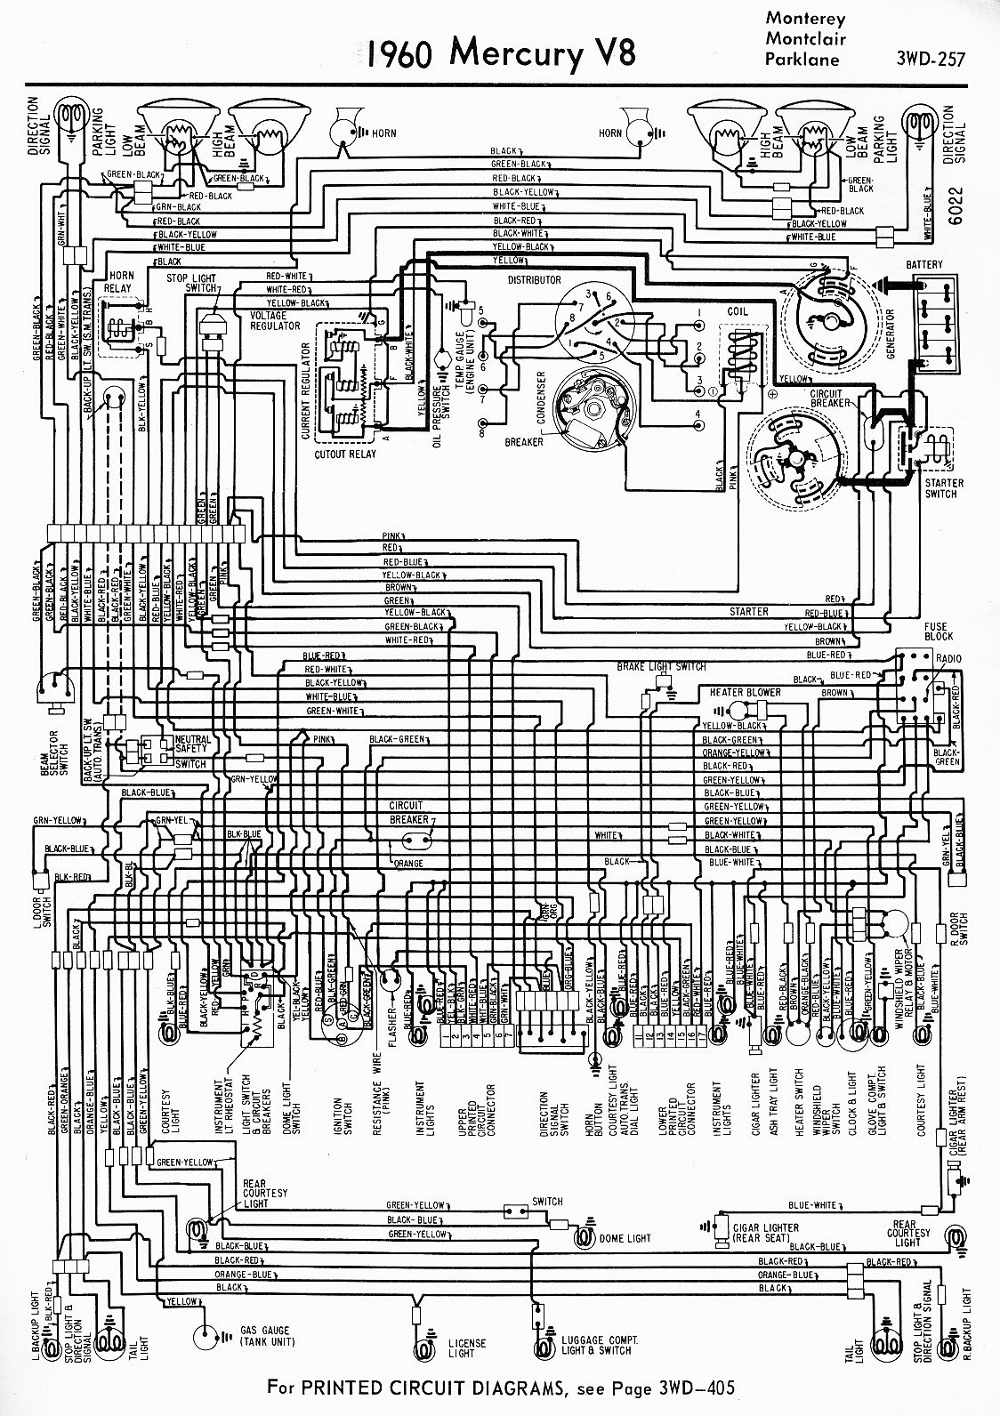 medium resolution of 2005 mercury monterey wiring diagram wiring diagram tags 2005 mercury monterey engine diagram